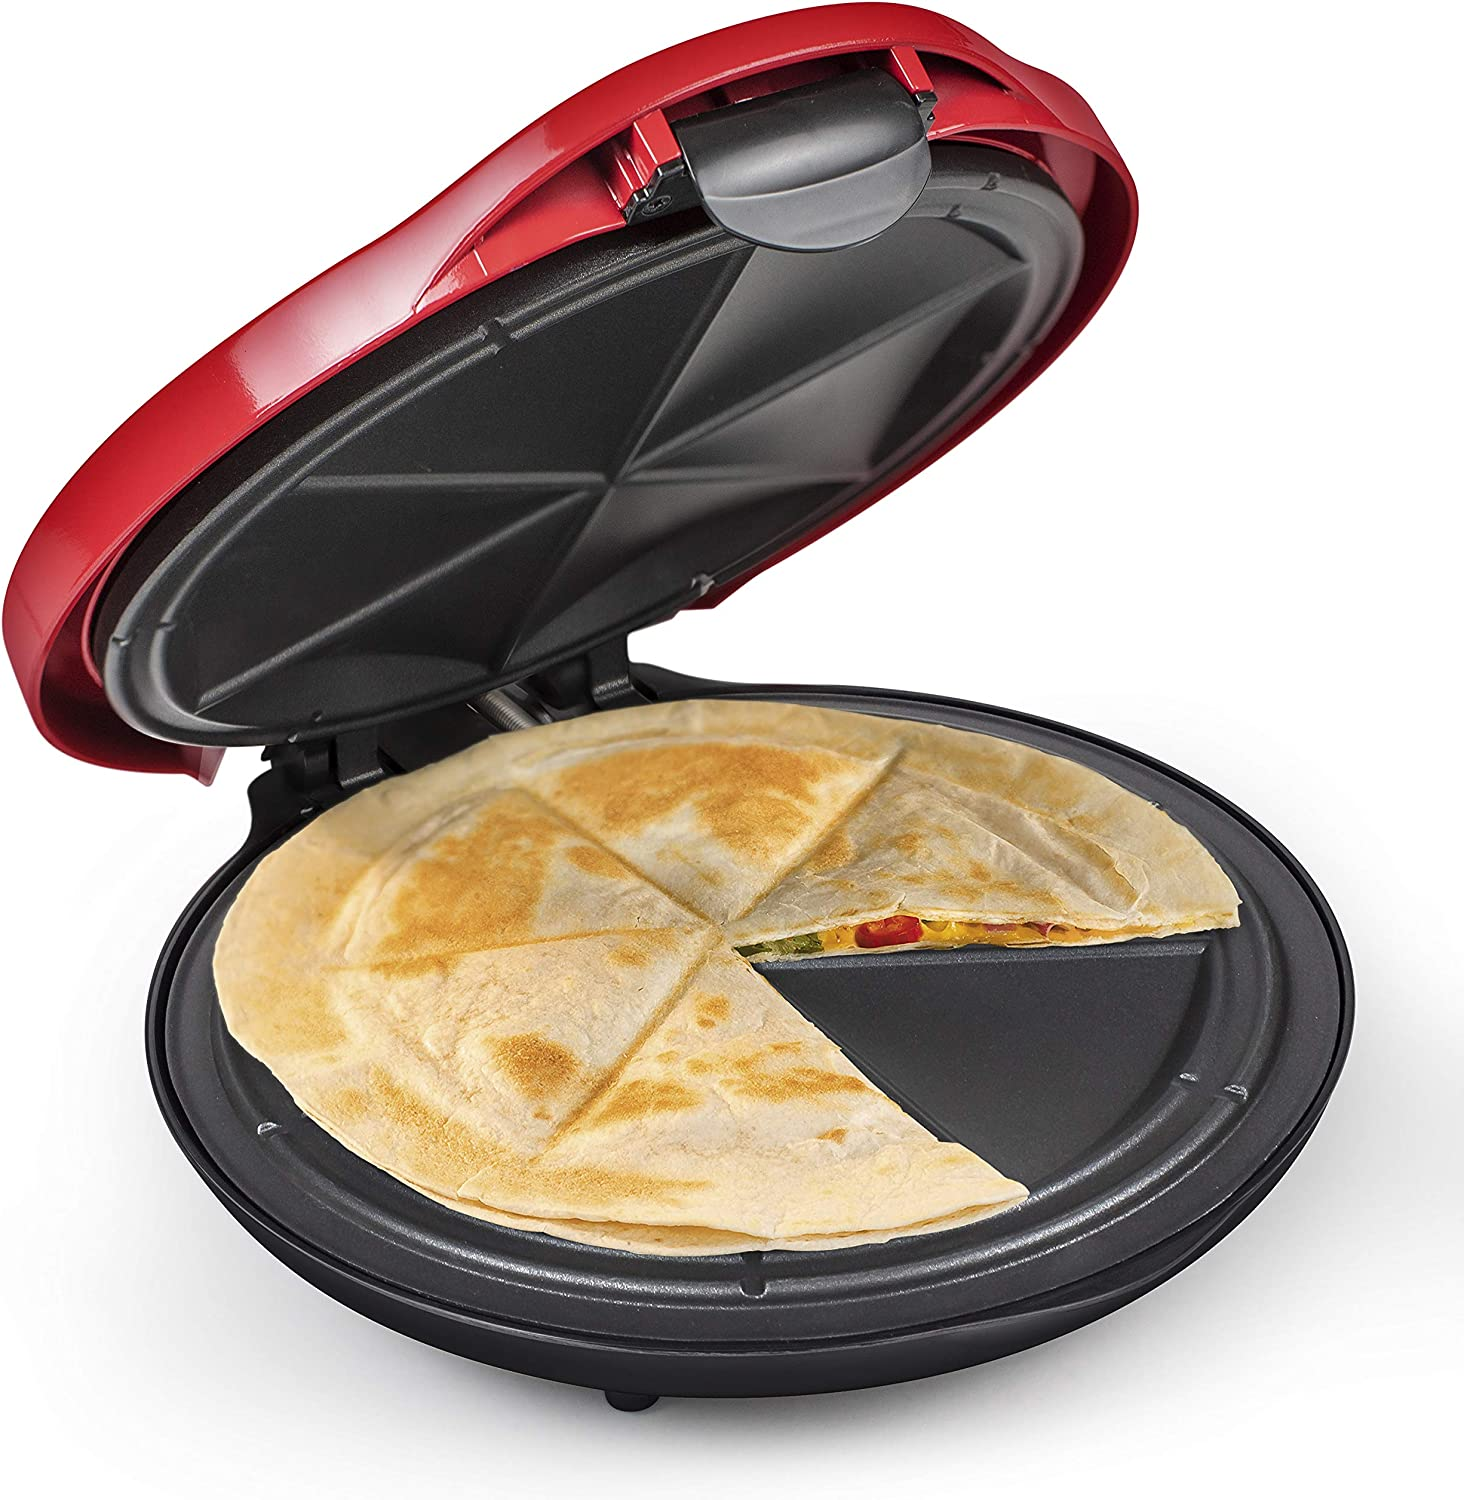 Nostalgia Taco Tuesday Deluxe 10-Inch 6-Wedge Electric Quesadilla Maker with Extra Stuffing Latch, Red